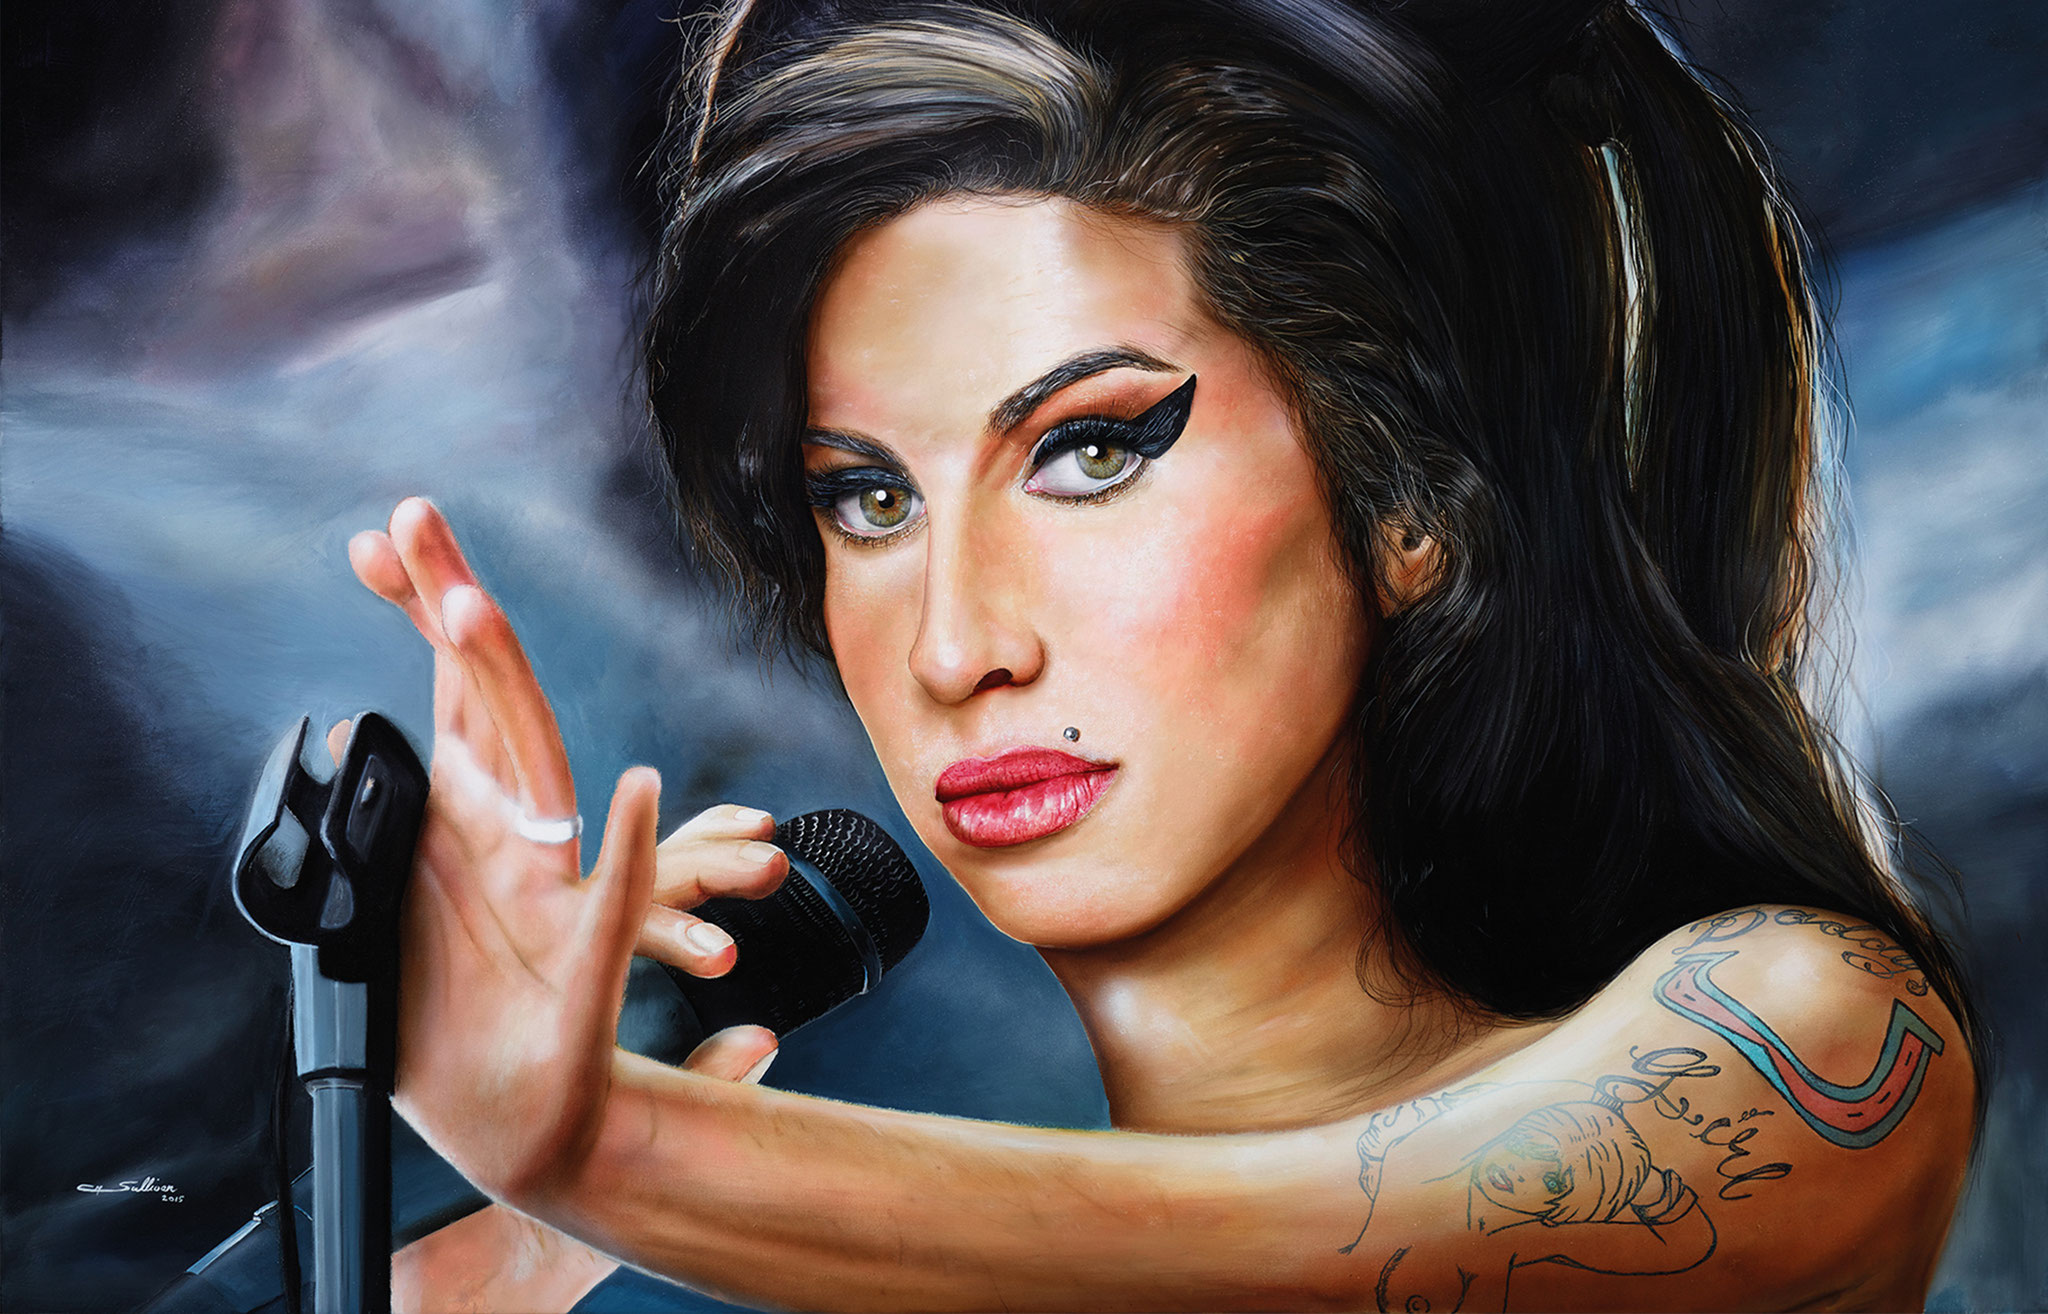 Sullivan_AmyWinehouse_Club27_Art